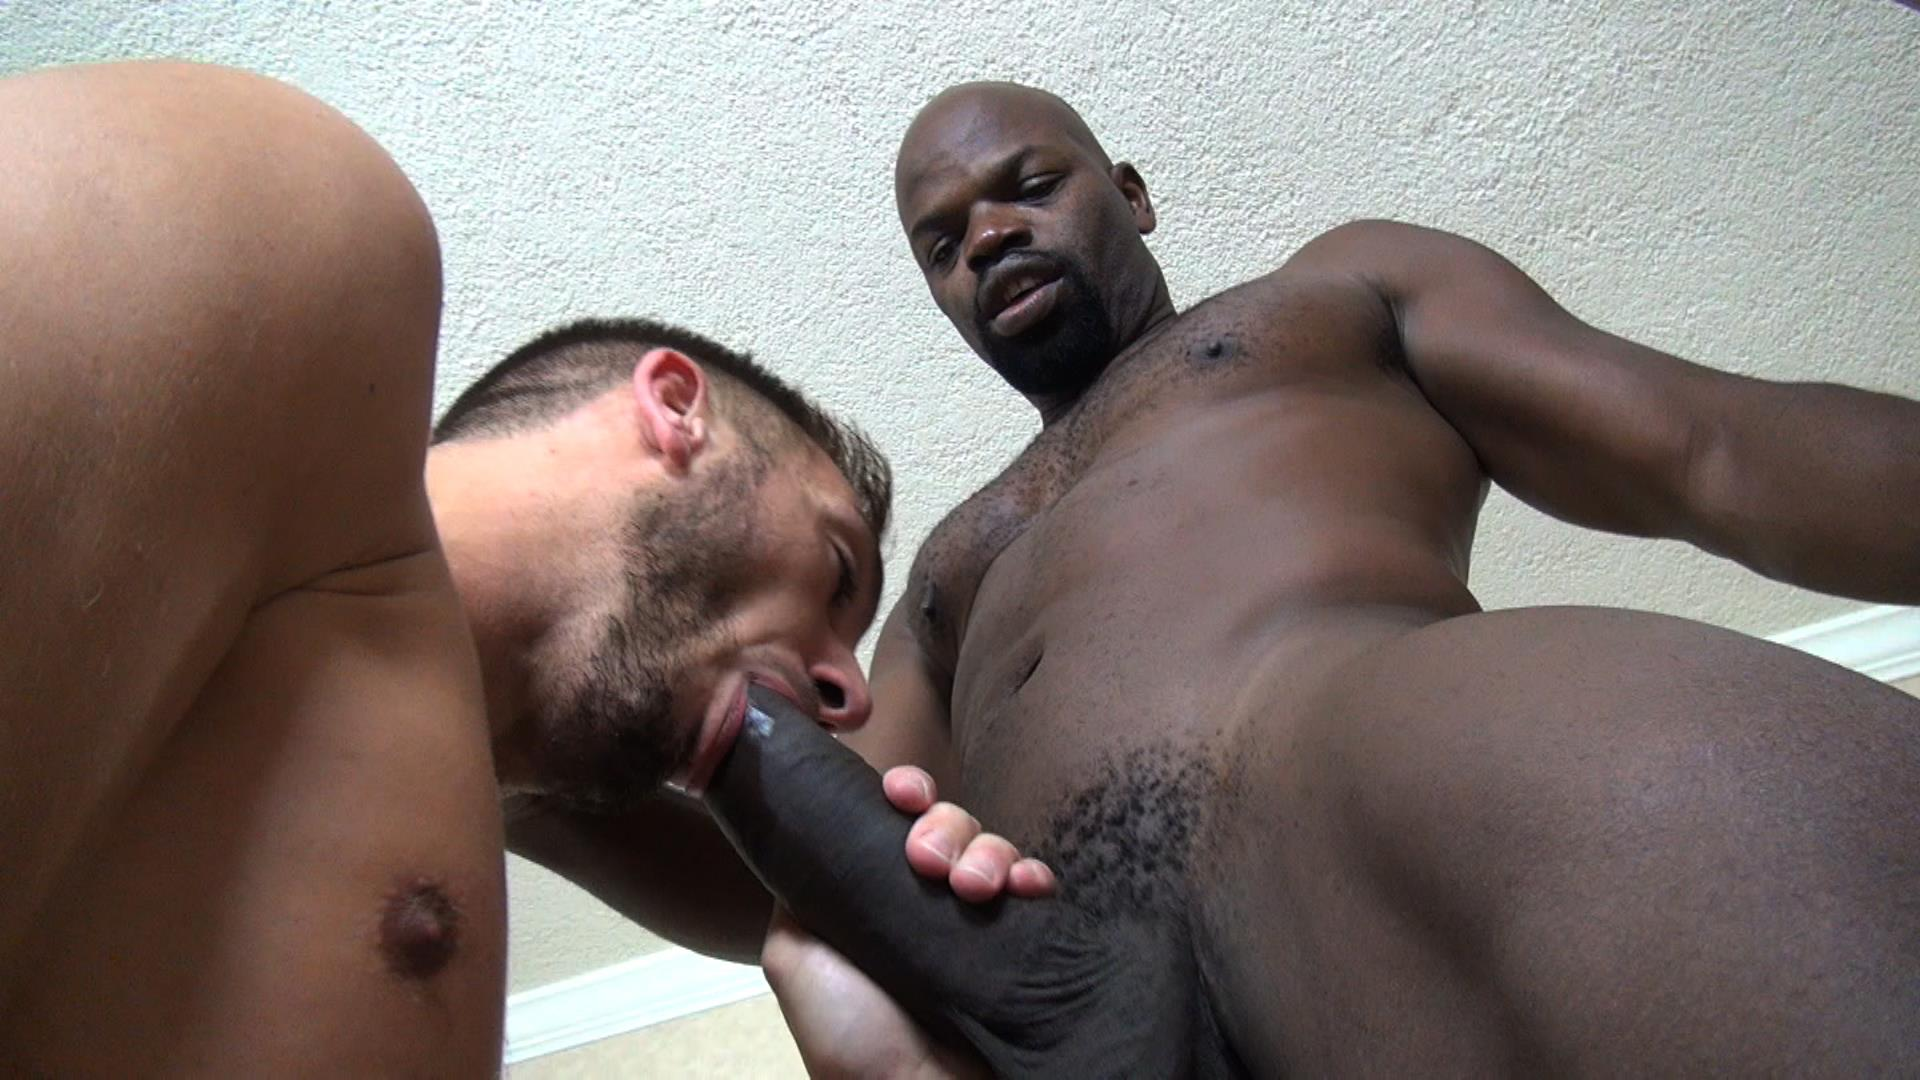 Interracial gay torrent #13